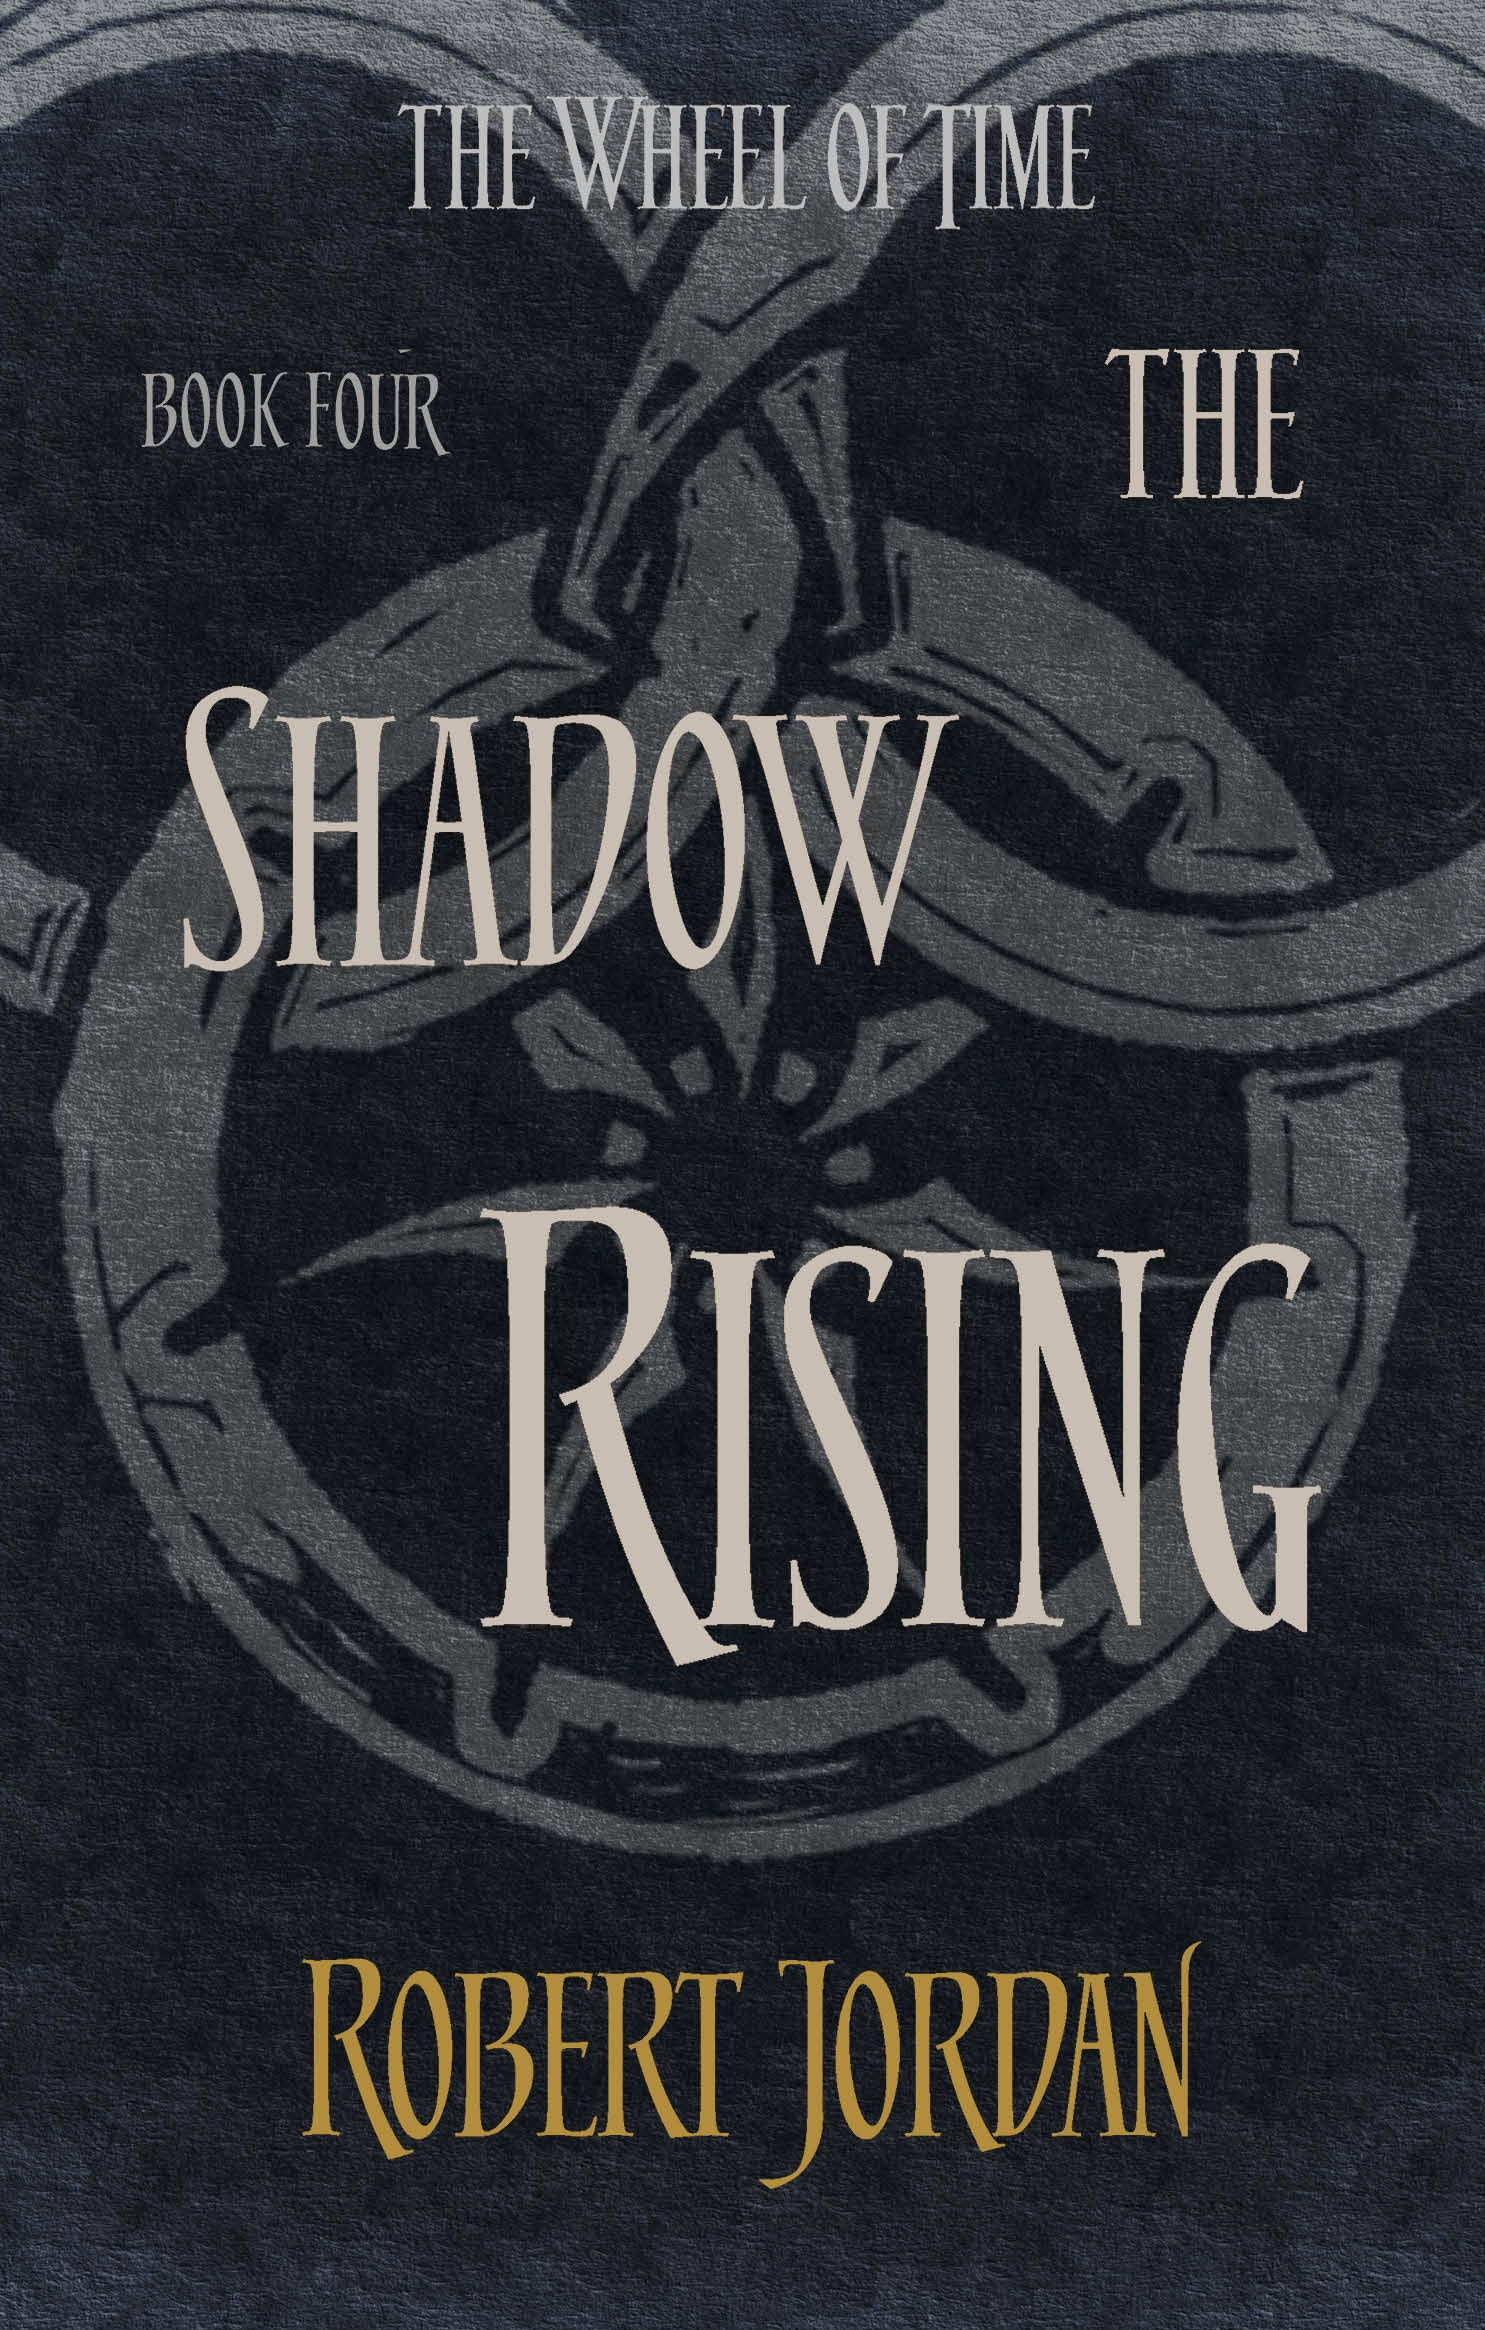 The Shadow Rising Book 4 Of The Wheel Of Time By Robert Jordan Books Hachette Australia